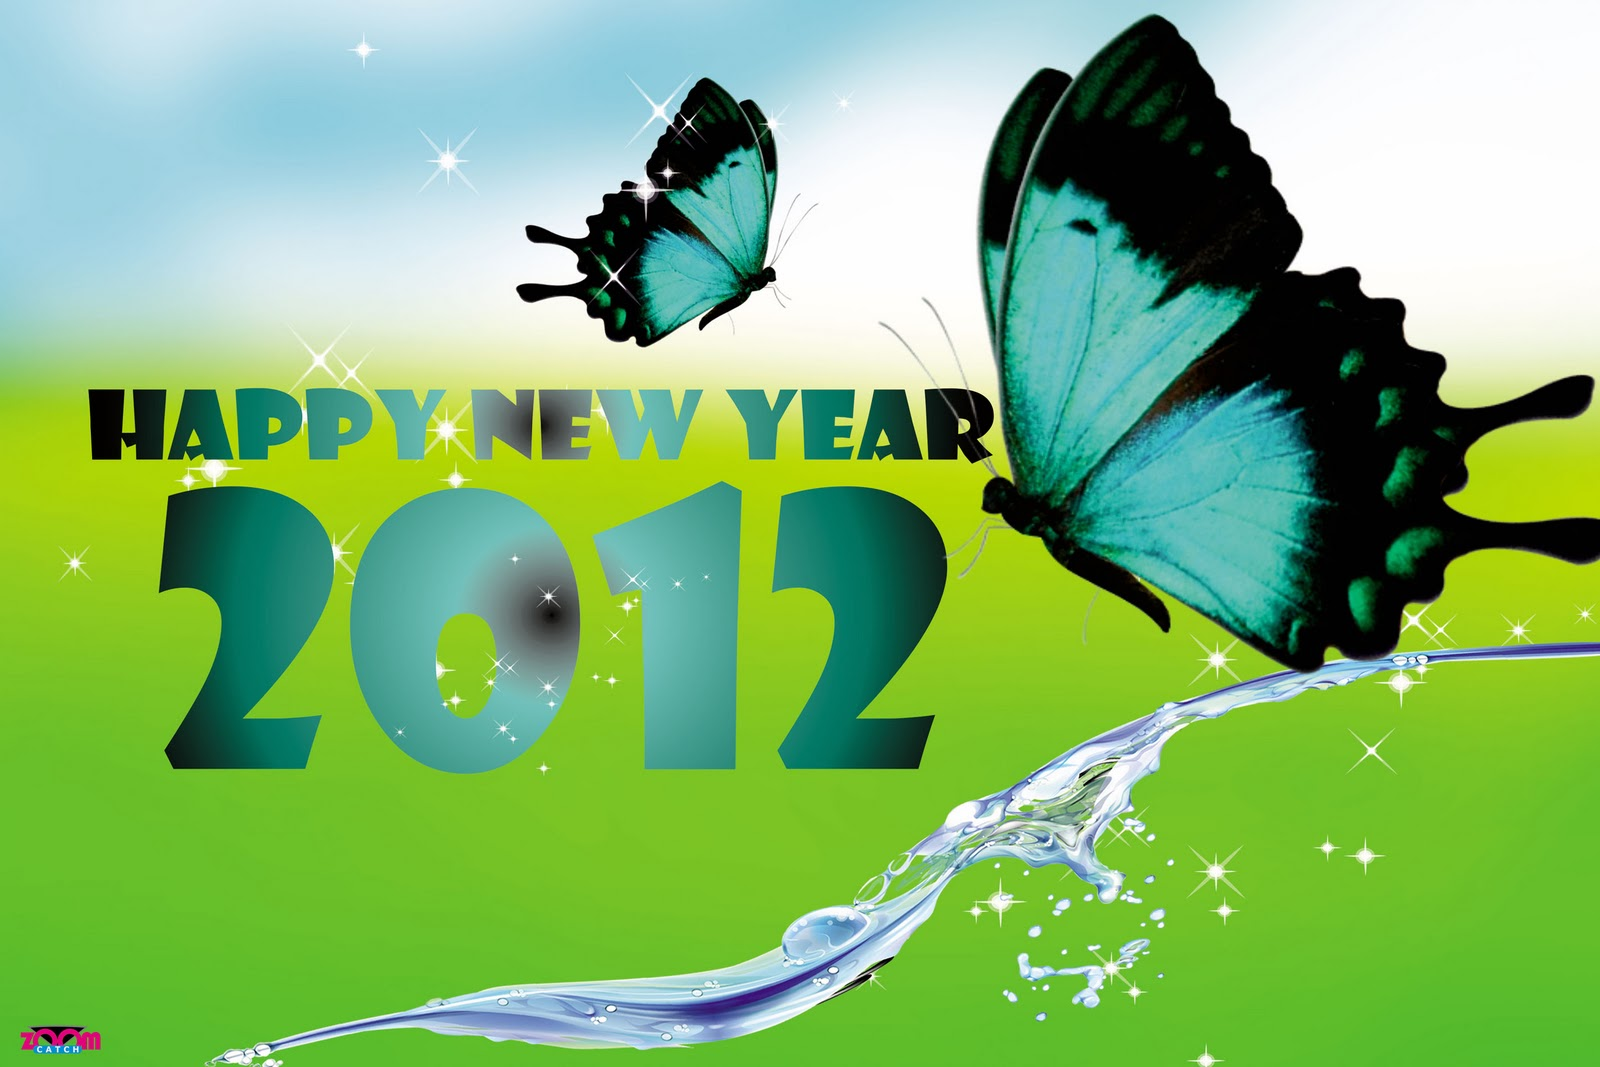 http://2.bp.blogspot.com/-l3oa3sStbbQ/ToP74uOT_AI/AAAAAAAAAuM/E0iUqh79e5w/s1600/Happy-New-Year-2012.jpg